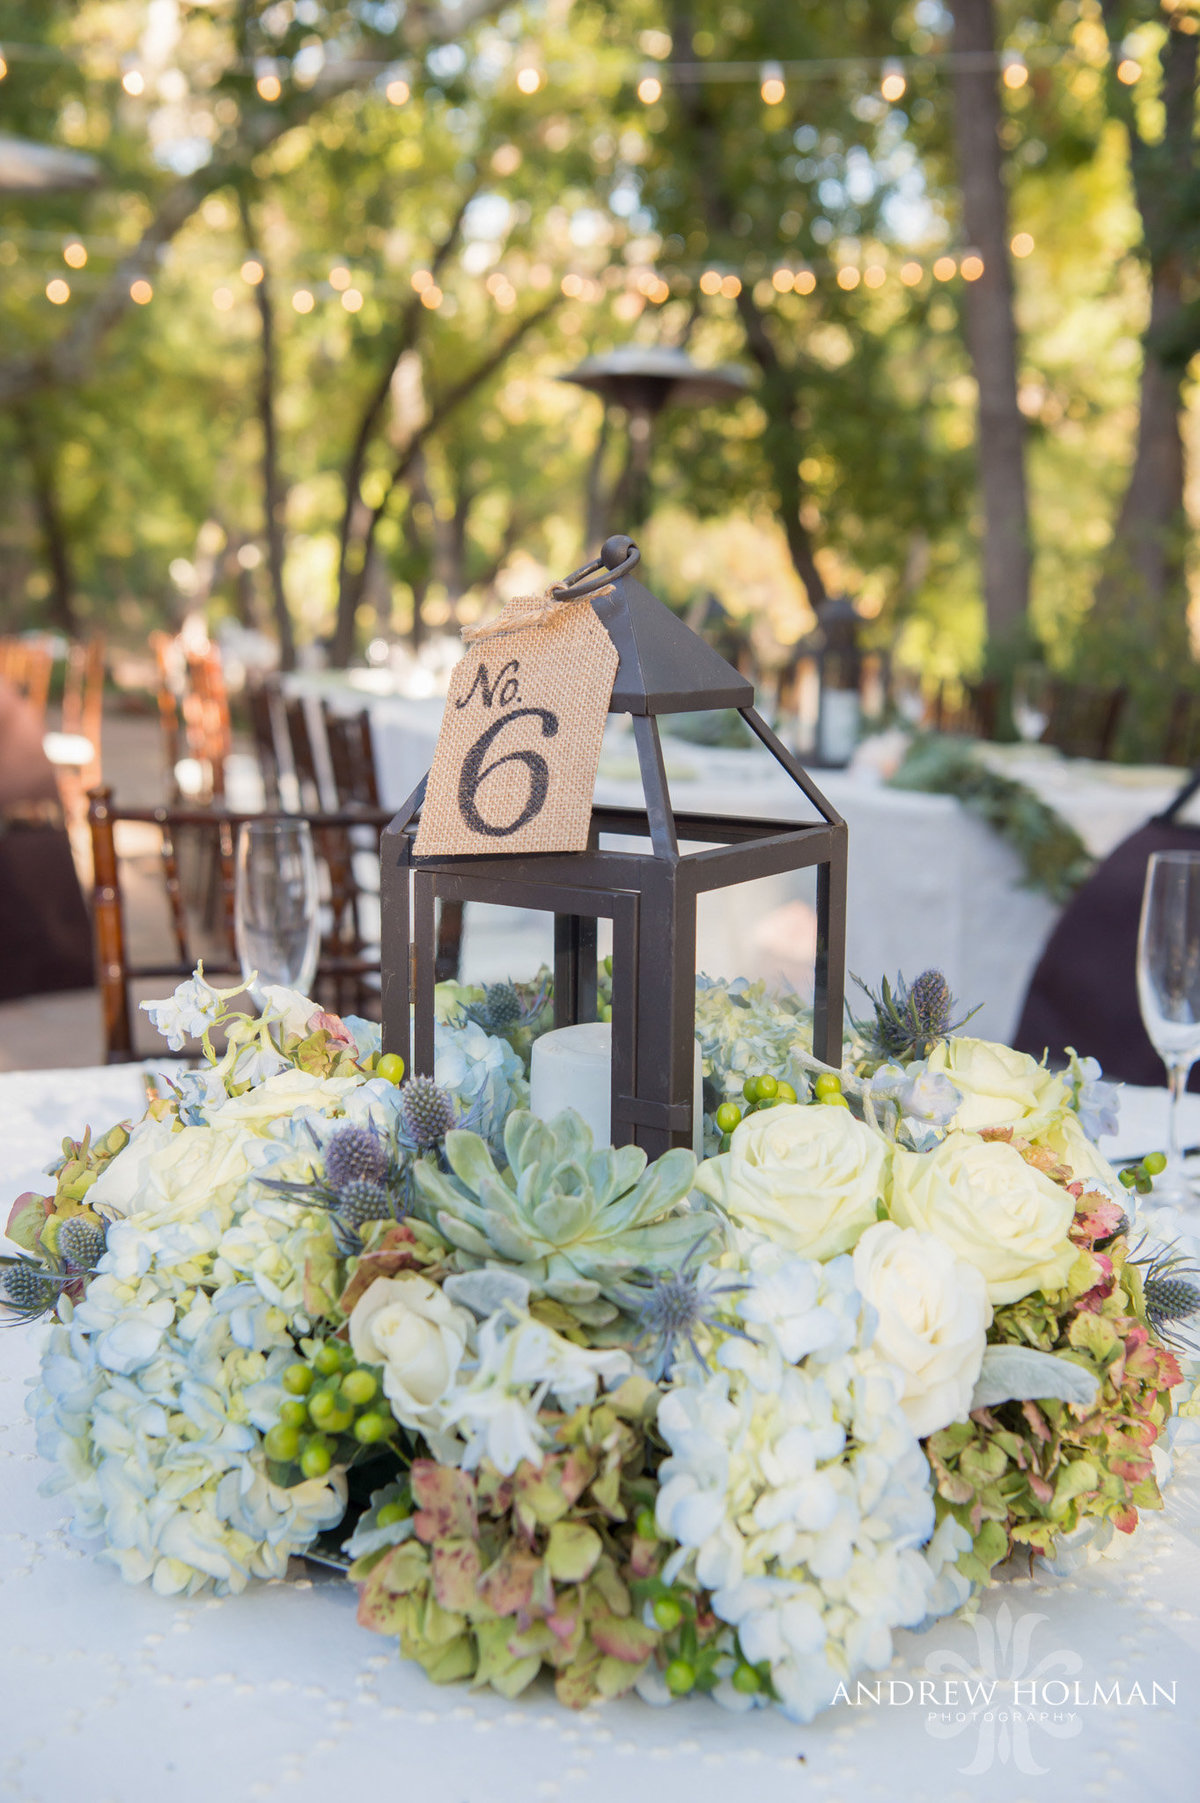 sedona flagstaff wedding florist lauberge blue green lanterns